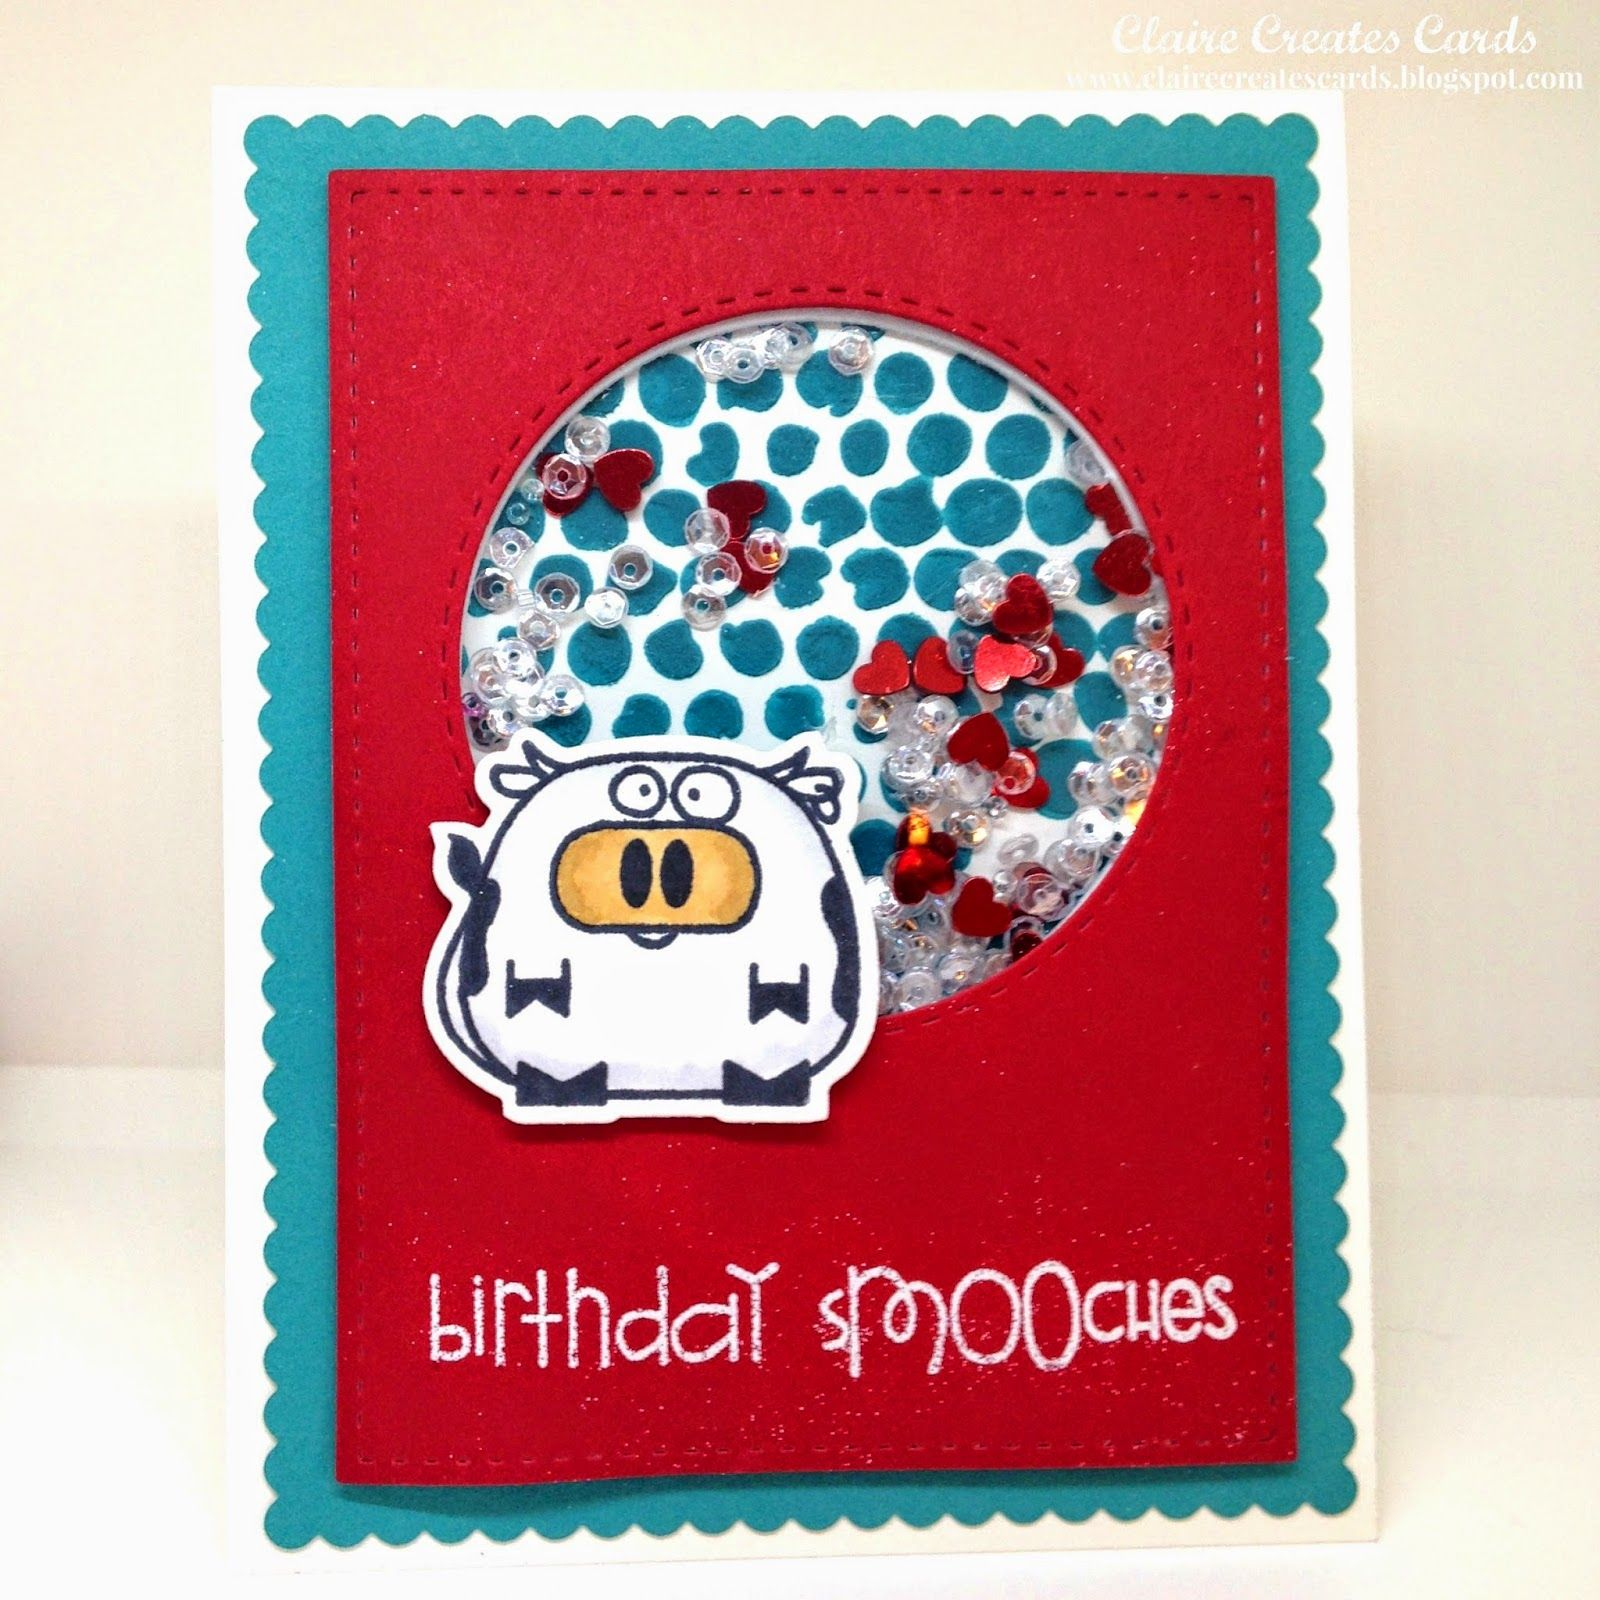 Claire Broadwater: Claire Creates Cards – Birthday sMOOches--FM 197 - 2/13/15  (Paper Smooches stamps/ dies: Chubby Chums. Tim Holtz: Bubble stencil)